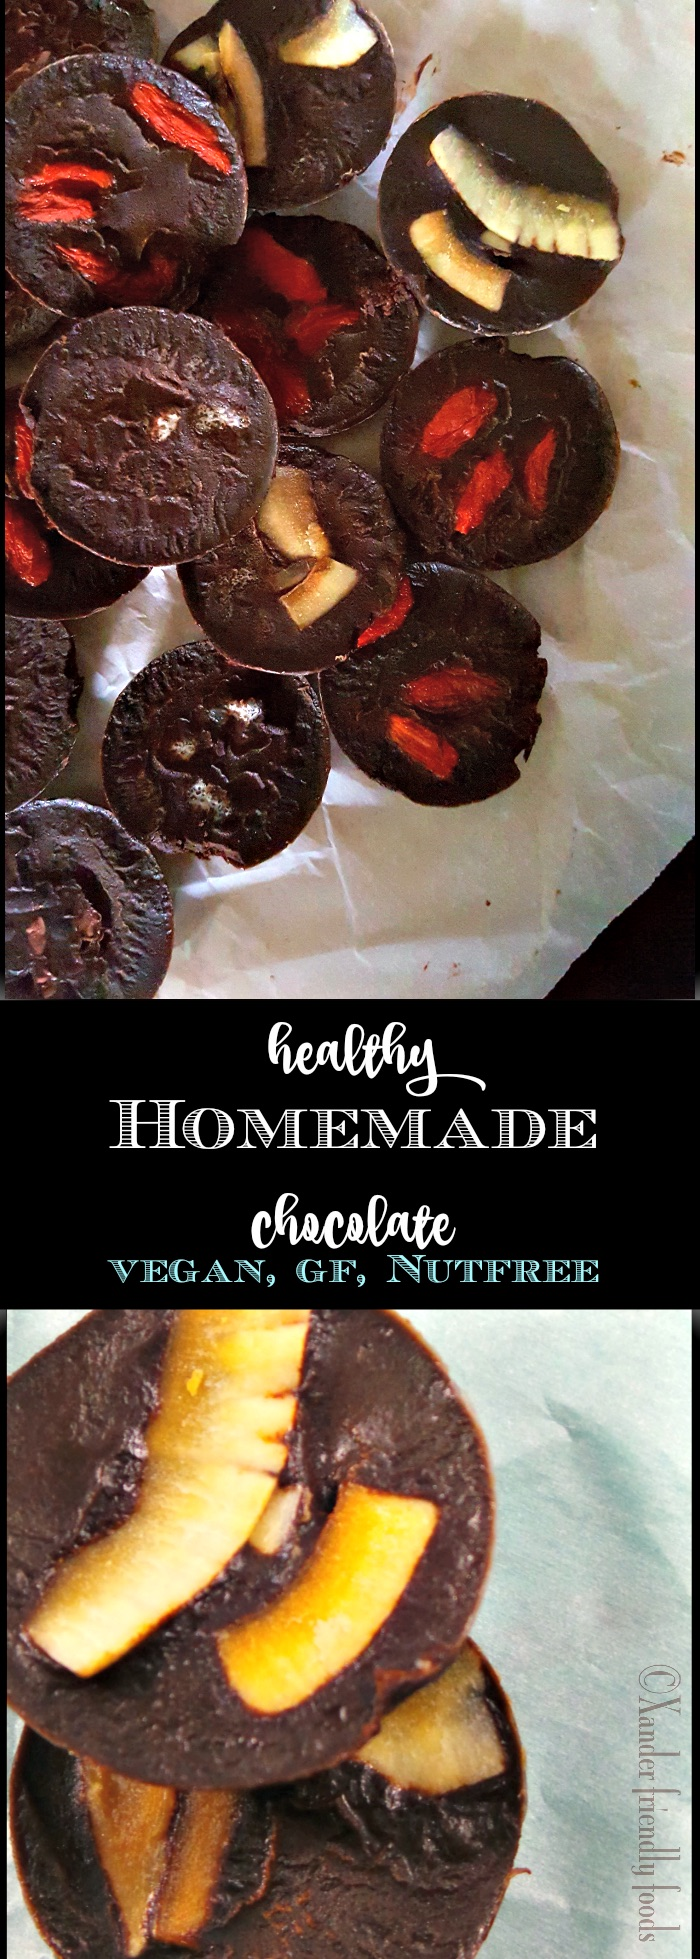 Healthy, yet blissfully delicious, homemade chocolate. A huge indulgence with a little amount of work. www.XanderfriendlyFoods.com